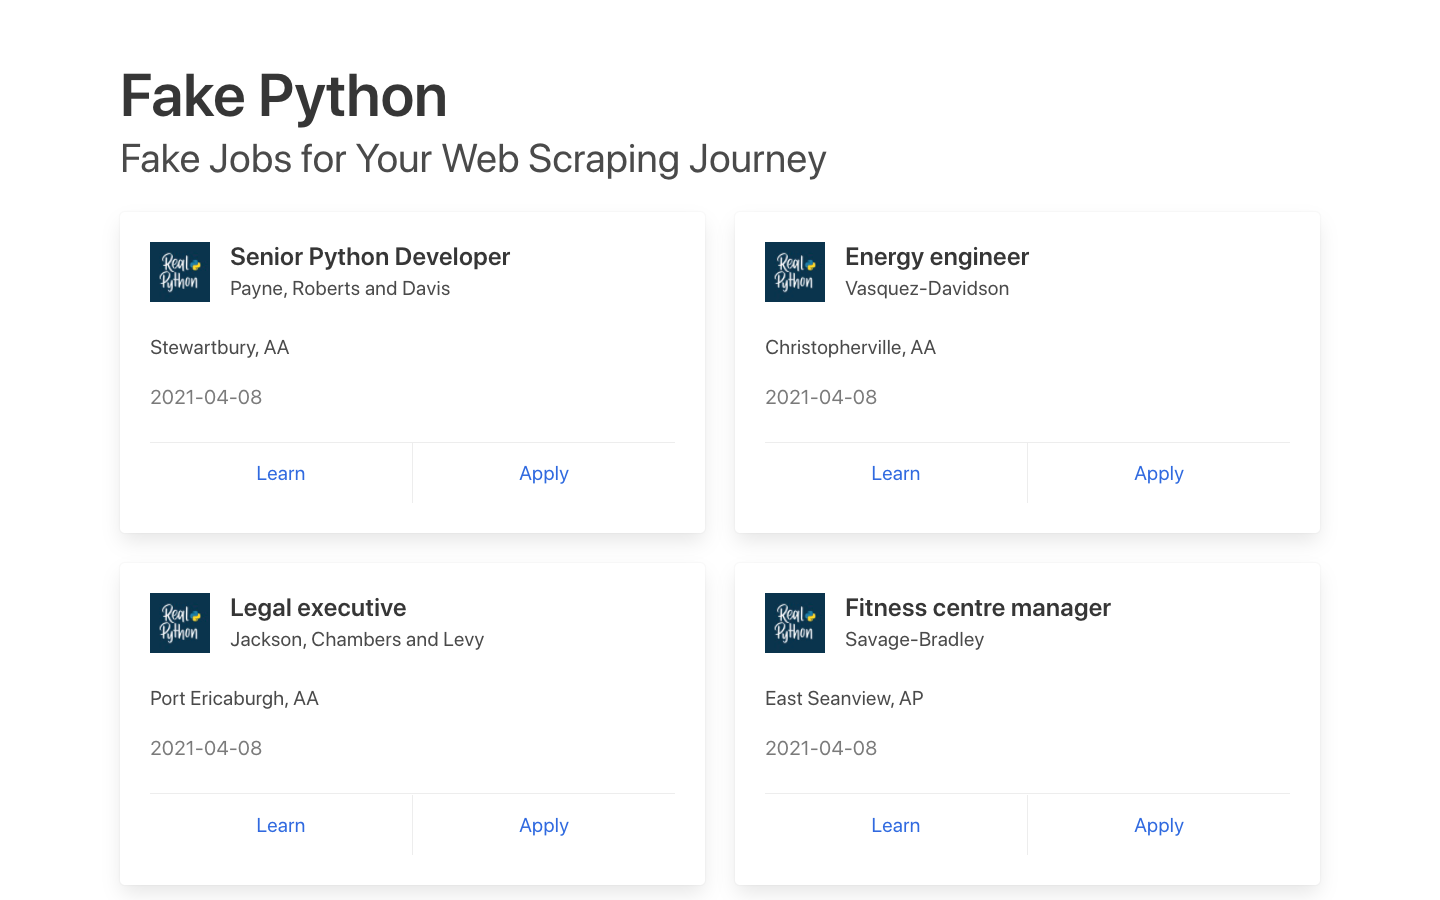 Index page of the Fake Python job board